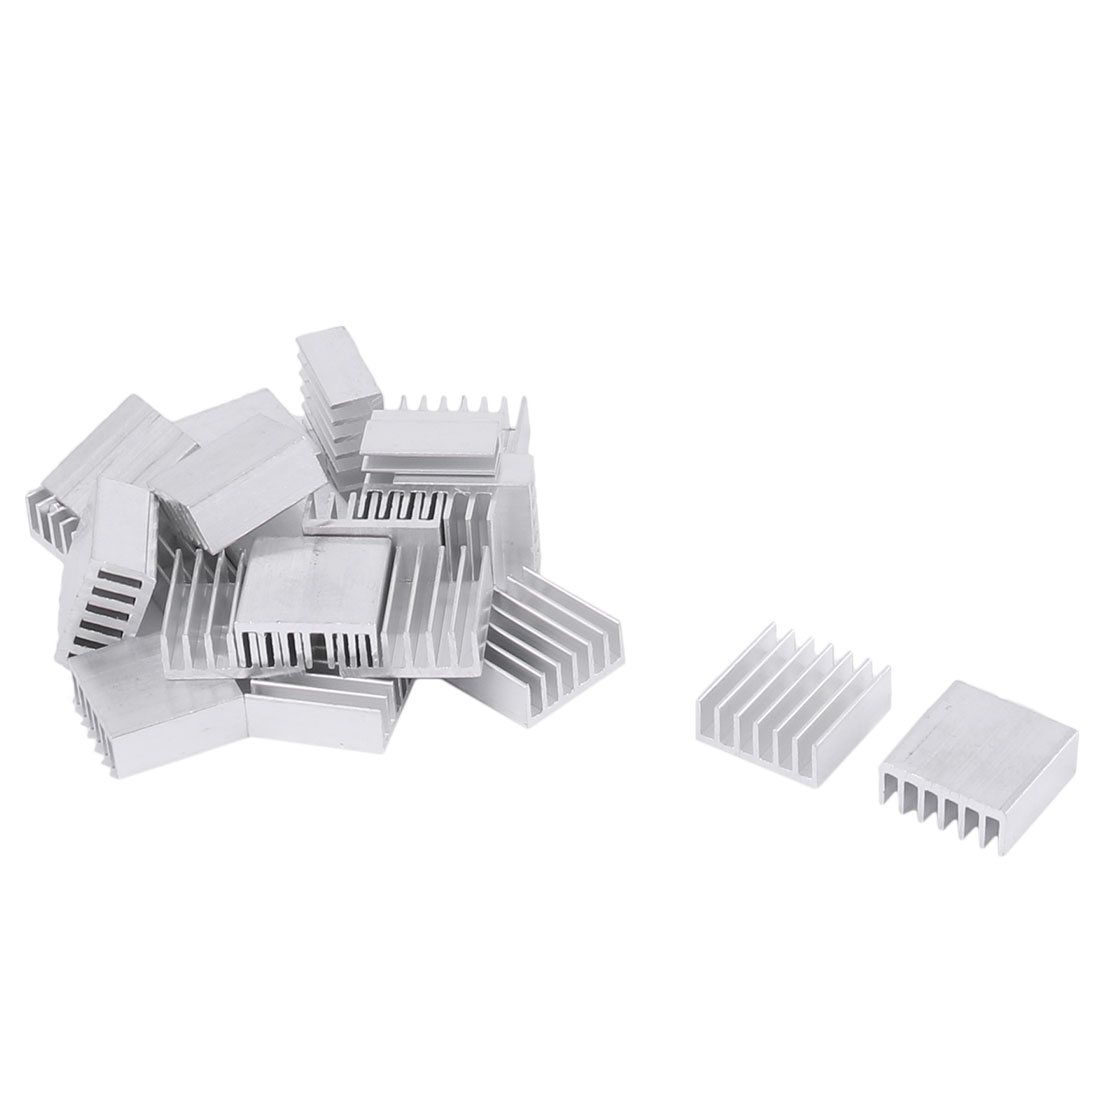 14mmx14mmx6mm Silver Tone Aluminium Power Amplifier Heat Sink Radiator Heatsink 25pcs